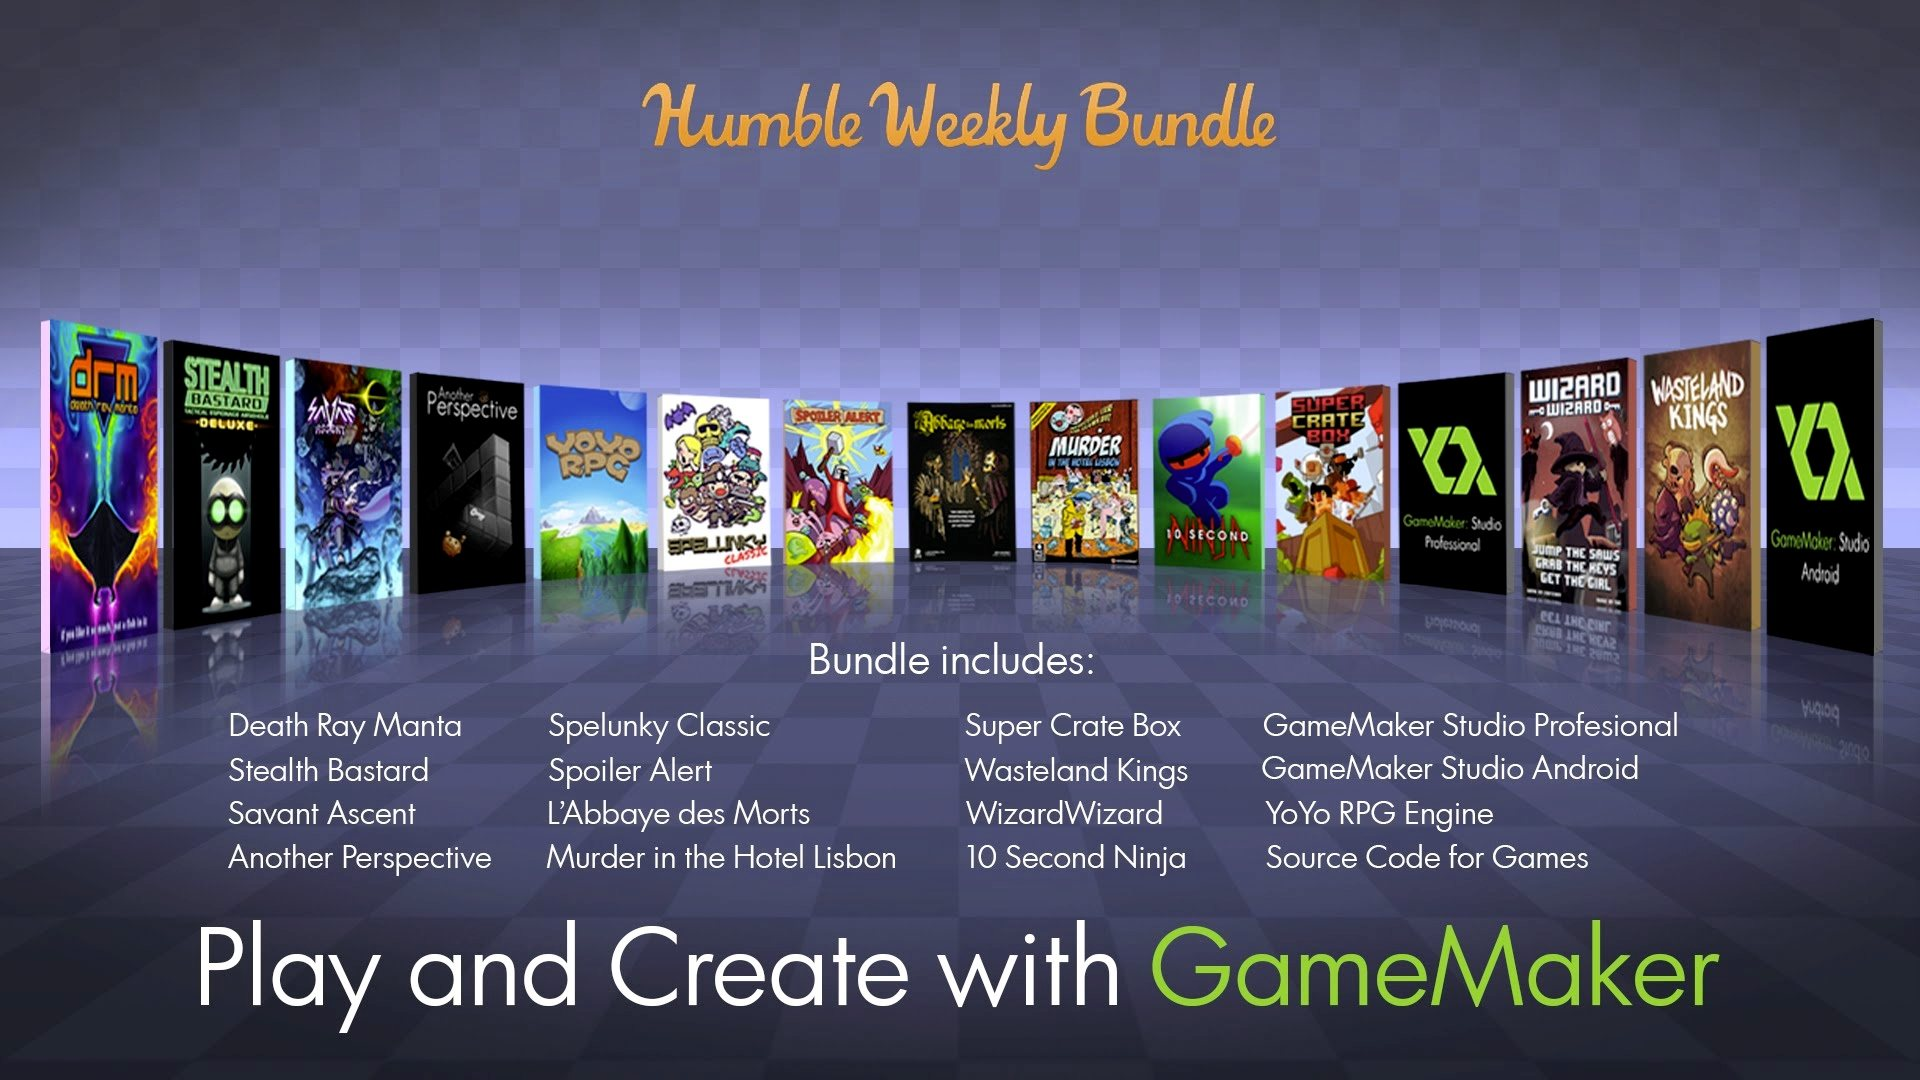 GameMaker Studio Pro a 6 dólares en Humble Bundle